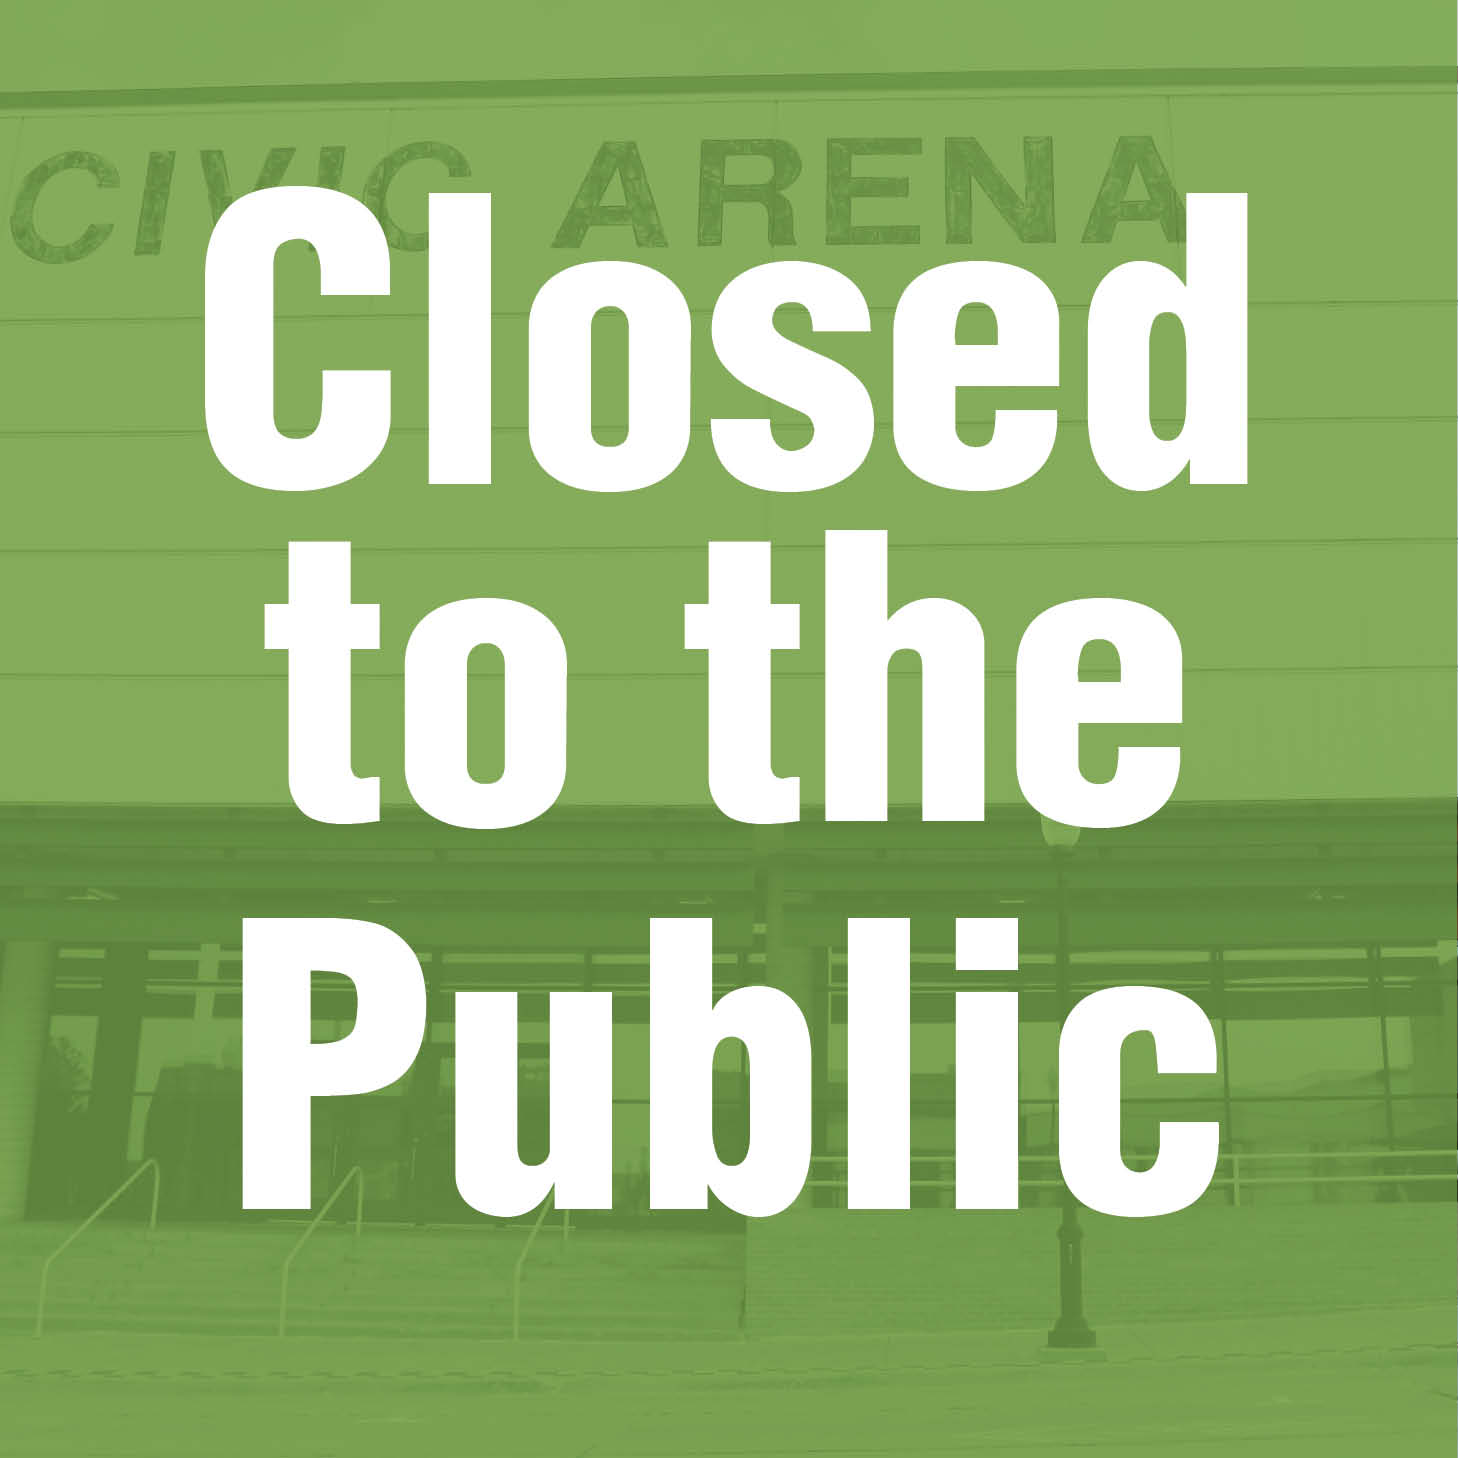 Civic Arena Closed to Public